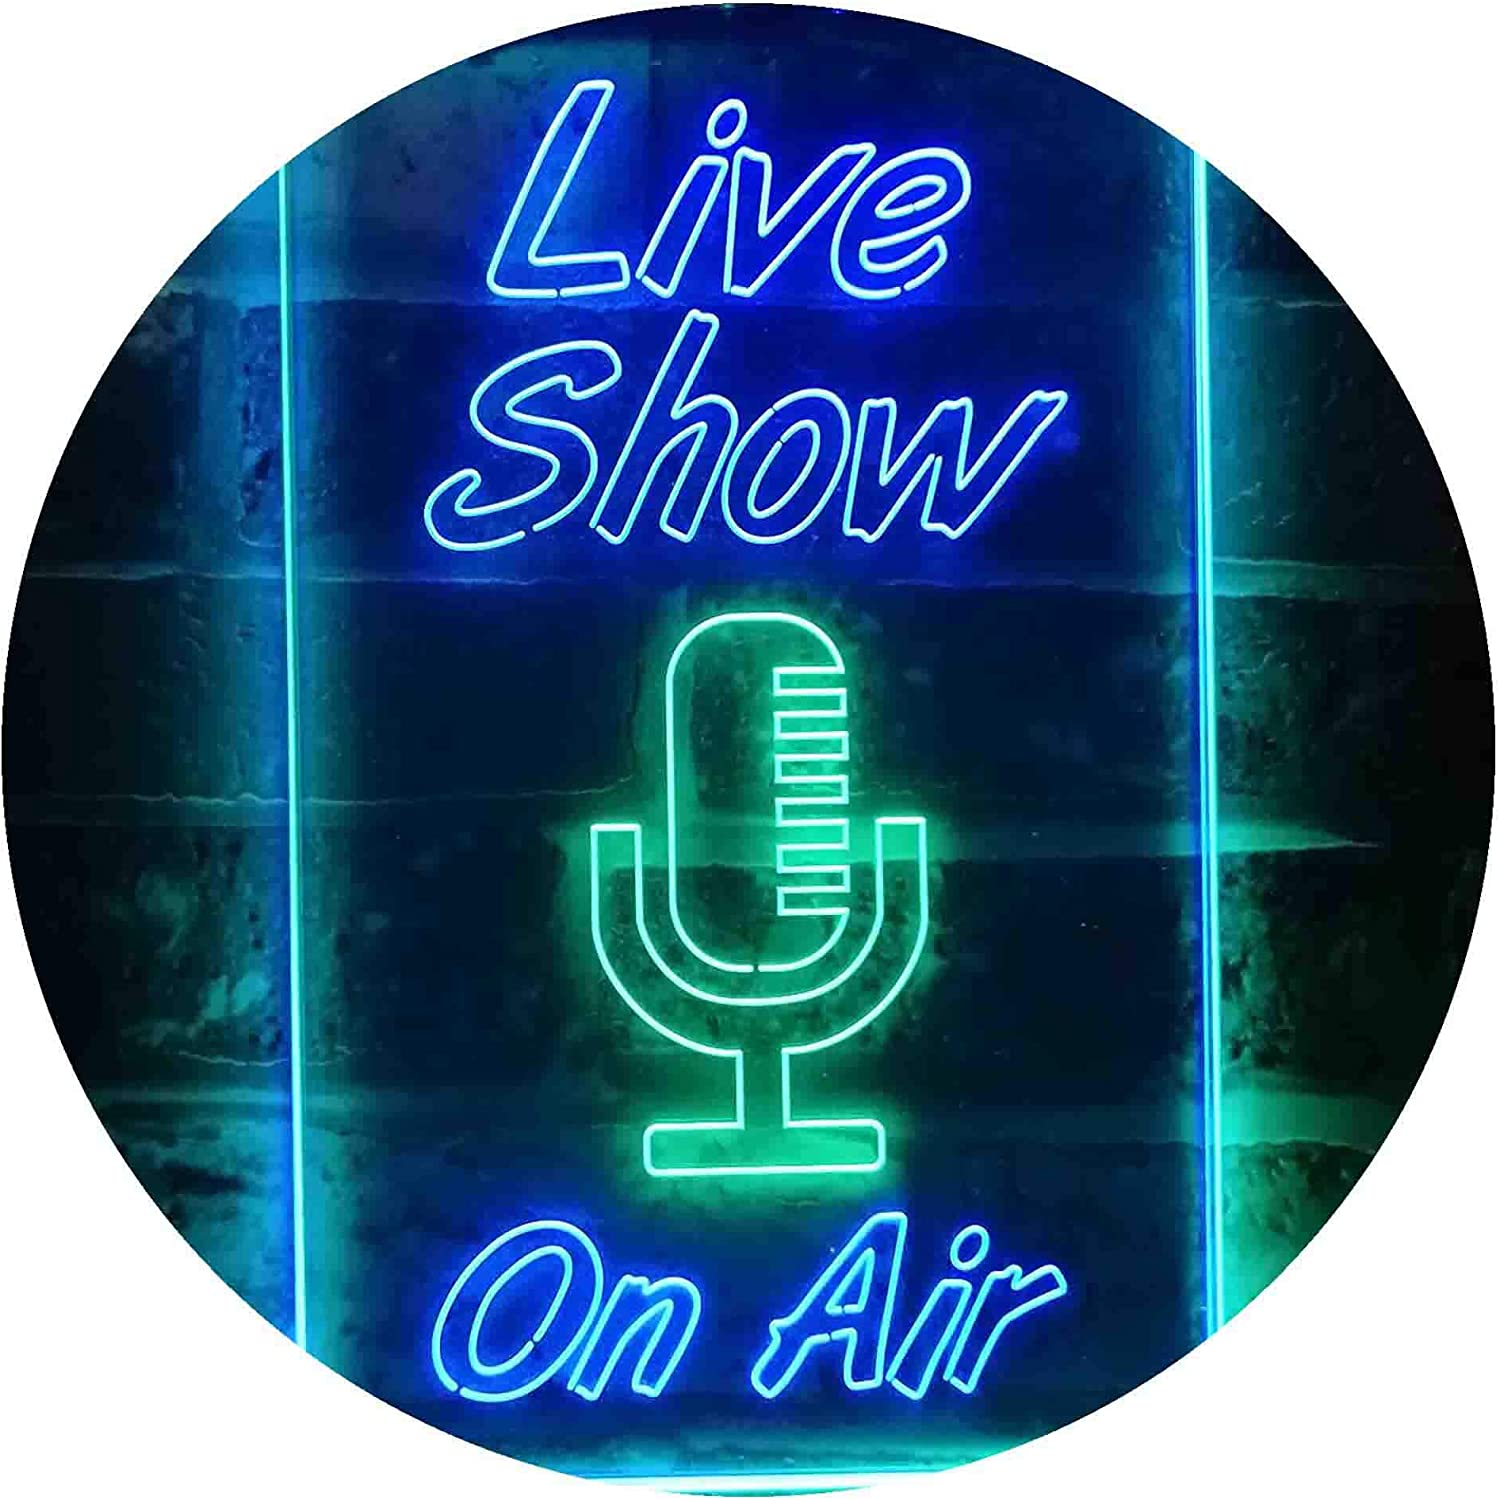 ADVPRO Live Show New Orleans Mall On Air Display LED Neon sale Dual Green Color Sign